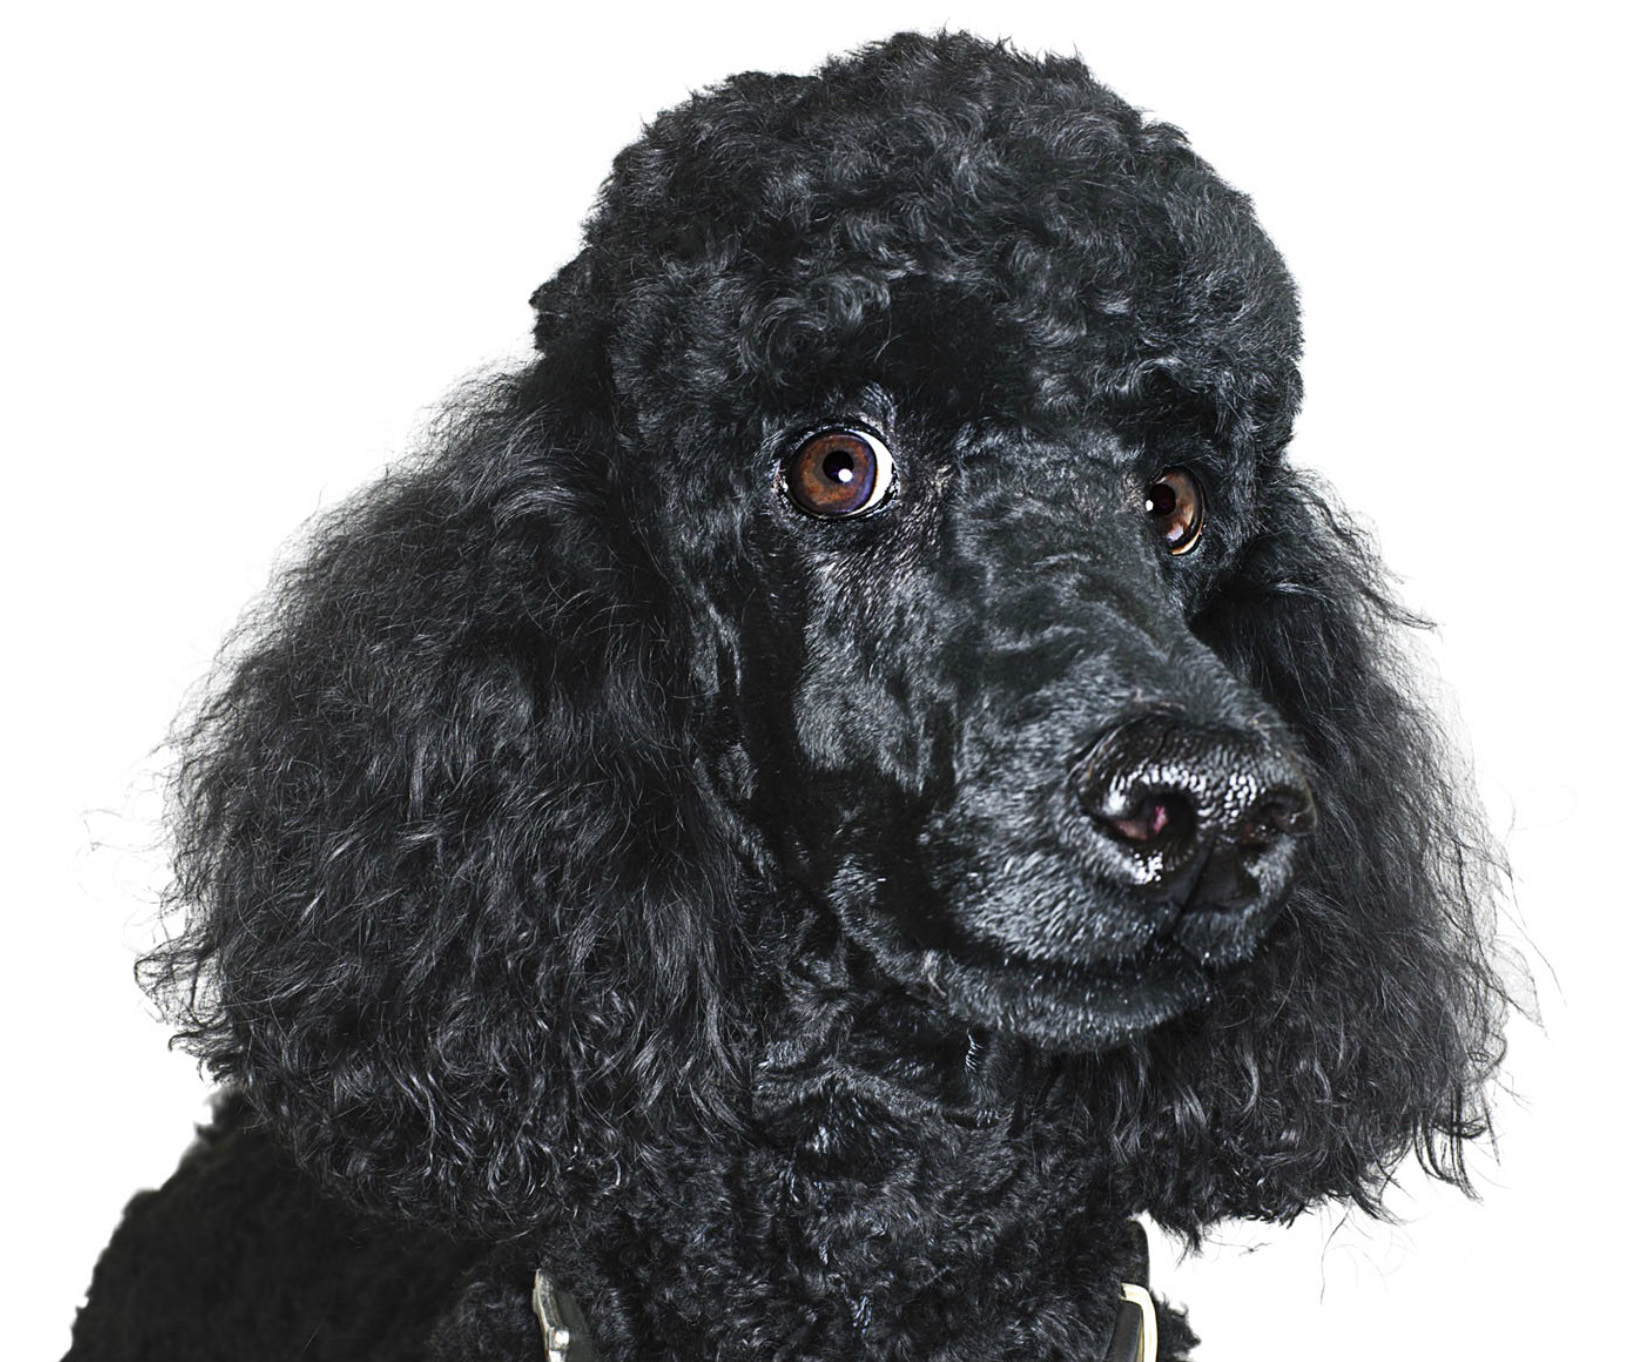 Portrait of dog, black Standard Poodle on white background CopyrightGandeeVasanDog102